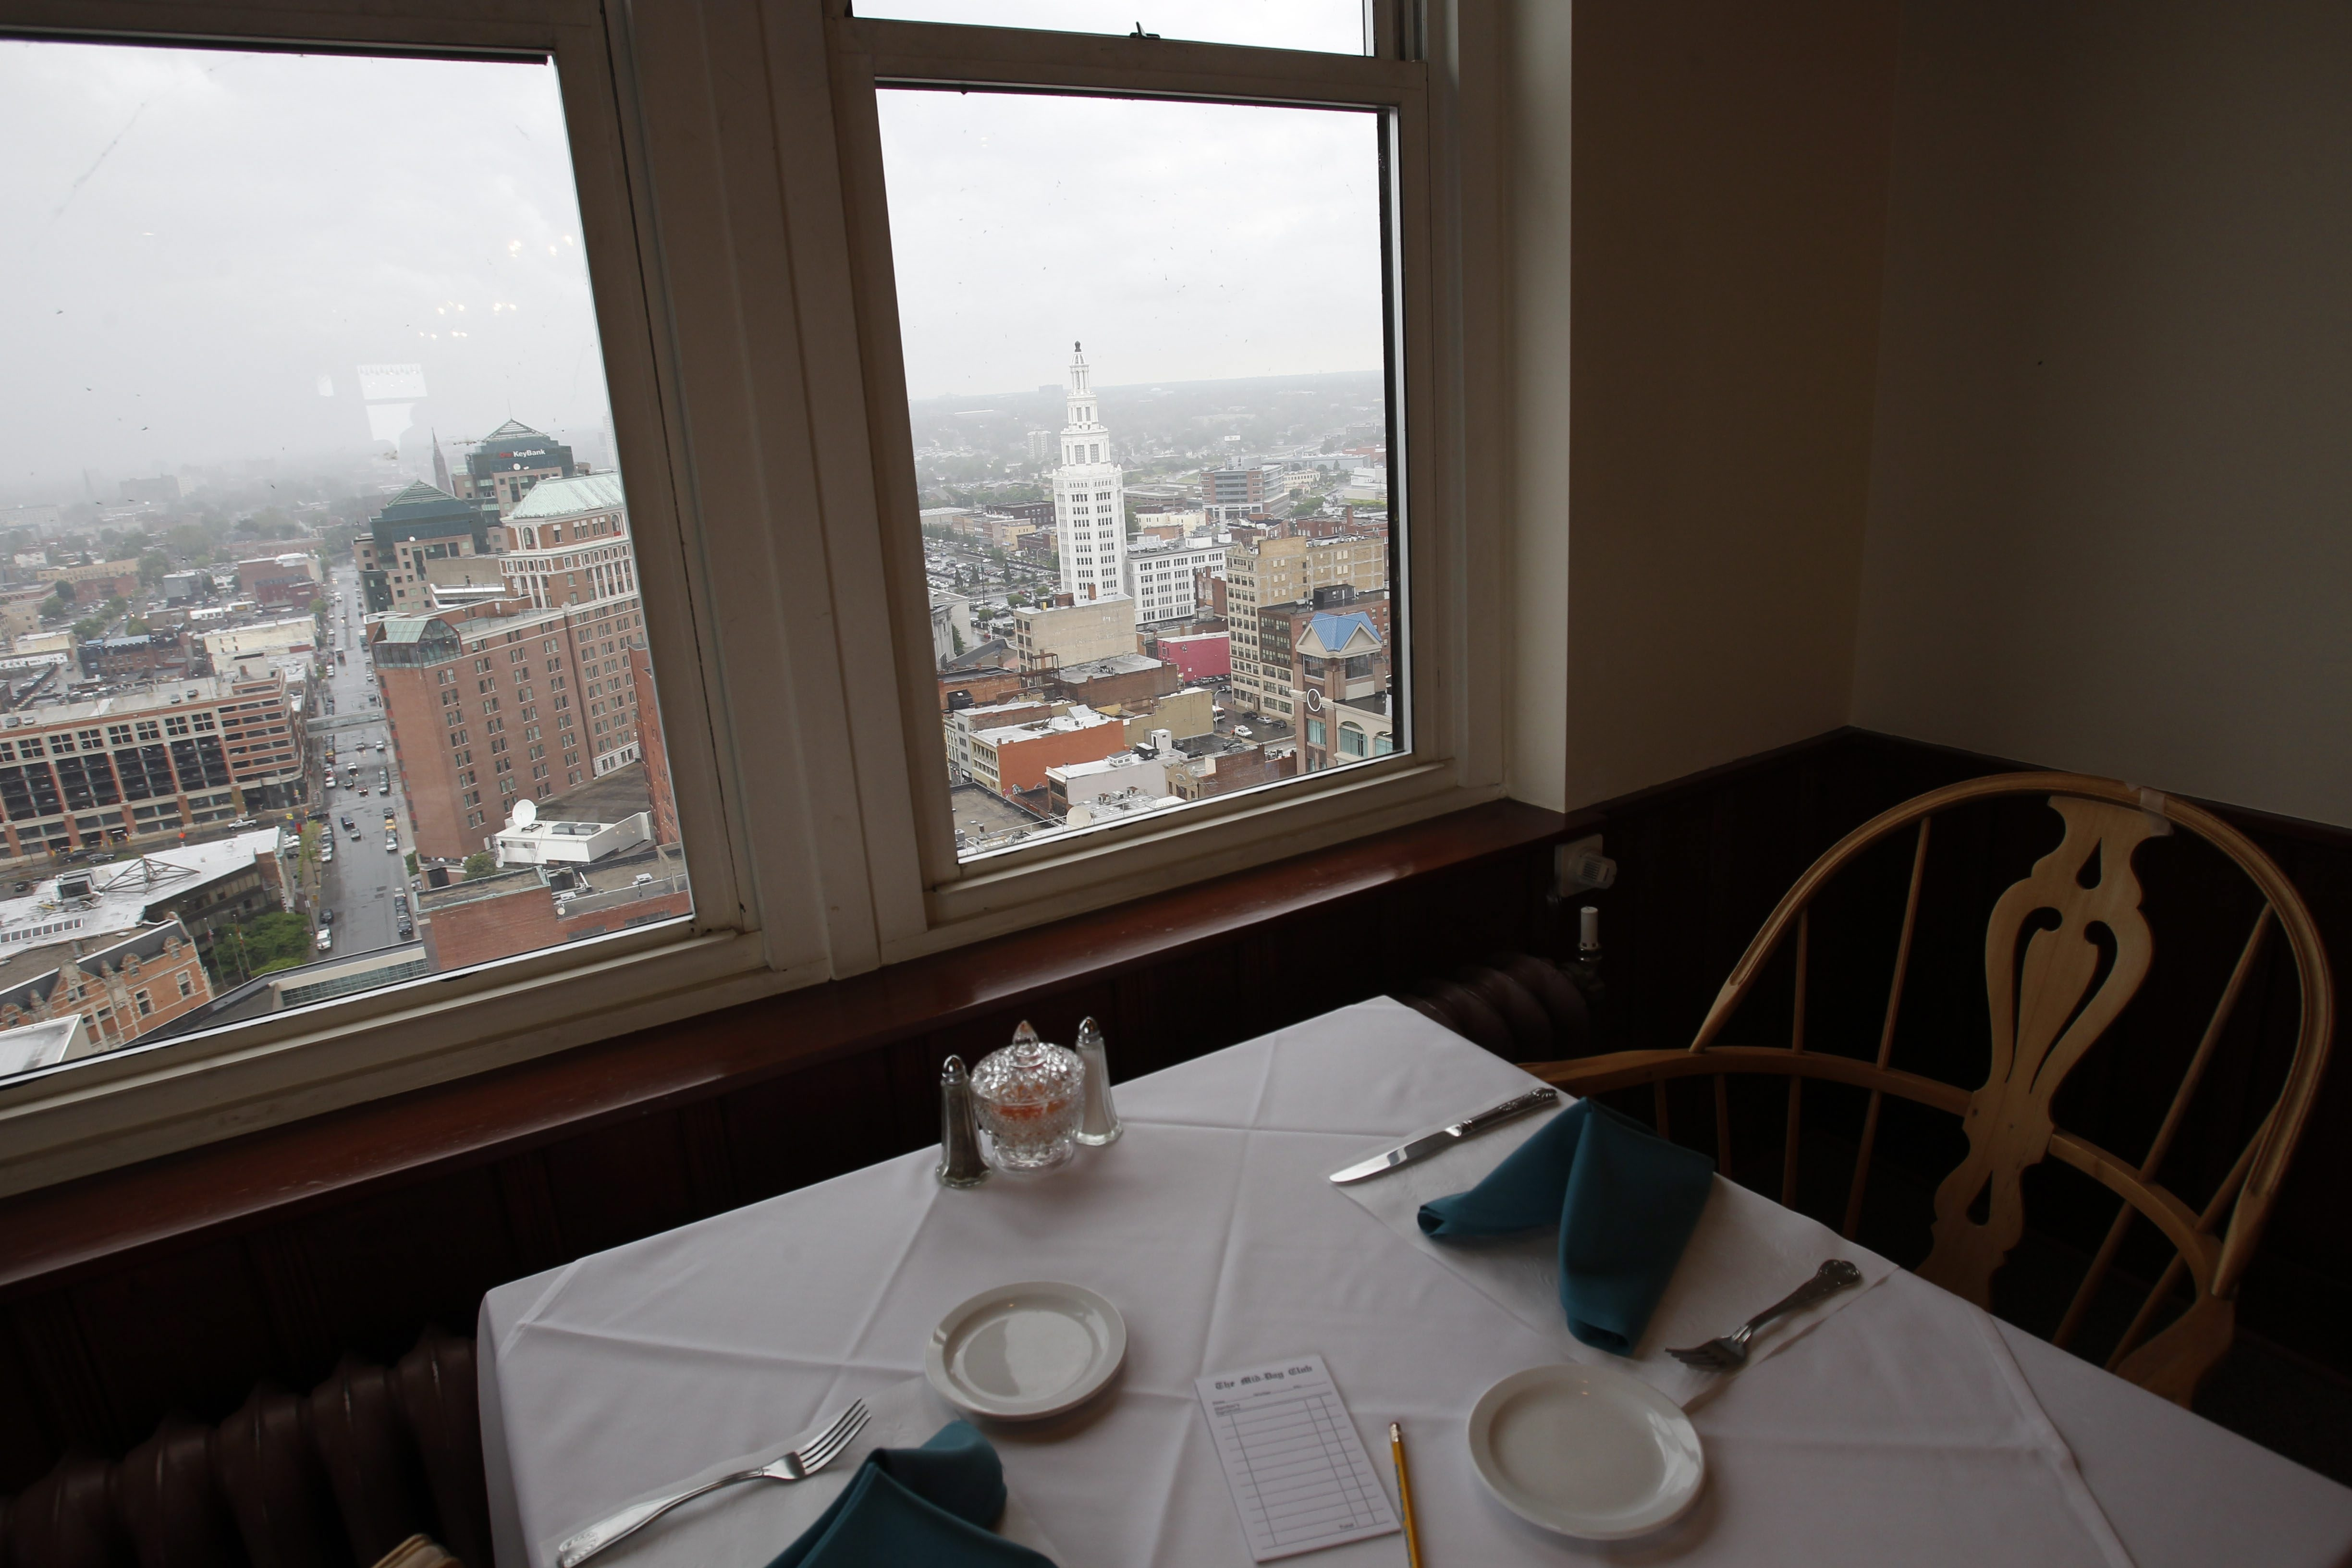 The Mid-Day Club, a lunchtime restaurant on the 21st floor of the Liberty Building, was founded in 1936.  The number of members has dwindled over the years and now stands at about 75.  The club is trying to recruit new members who enjoy what they say is excellent food with a spectacular view of downtown Buffalo.